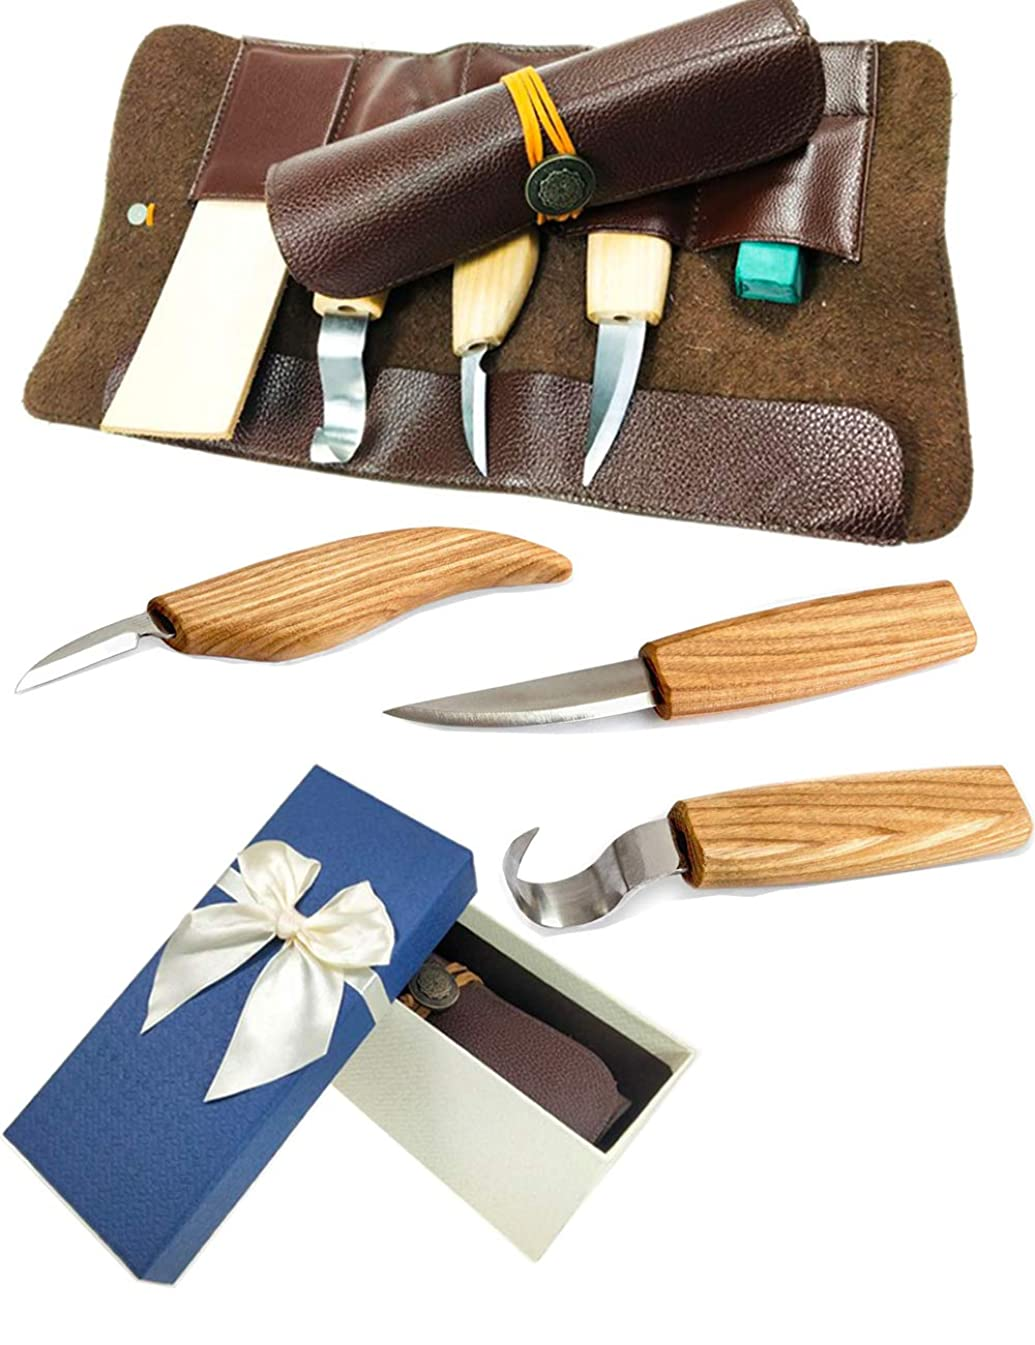 Wood Carving Tools Wood Carving Hook Knife Carving kit Set for Spoon Carving 3 Knives in Tools Roll Leather Strop and Polishing Compound Hook Sloyd Detail Knife Leather Cover case